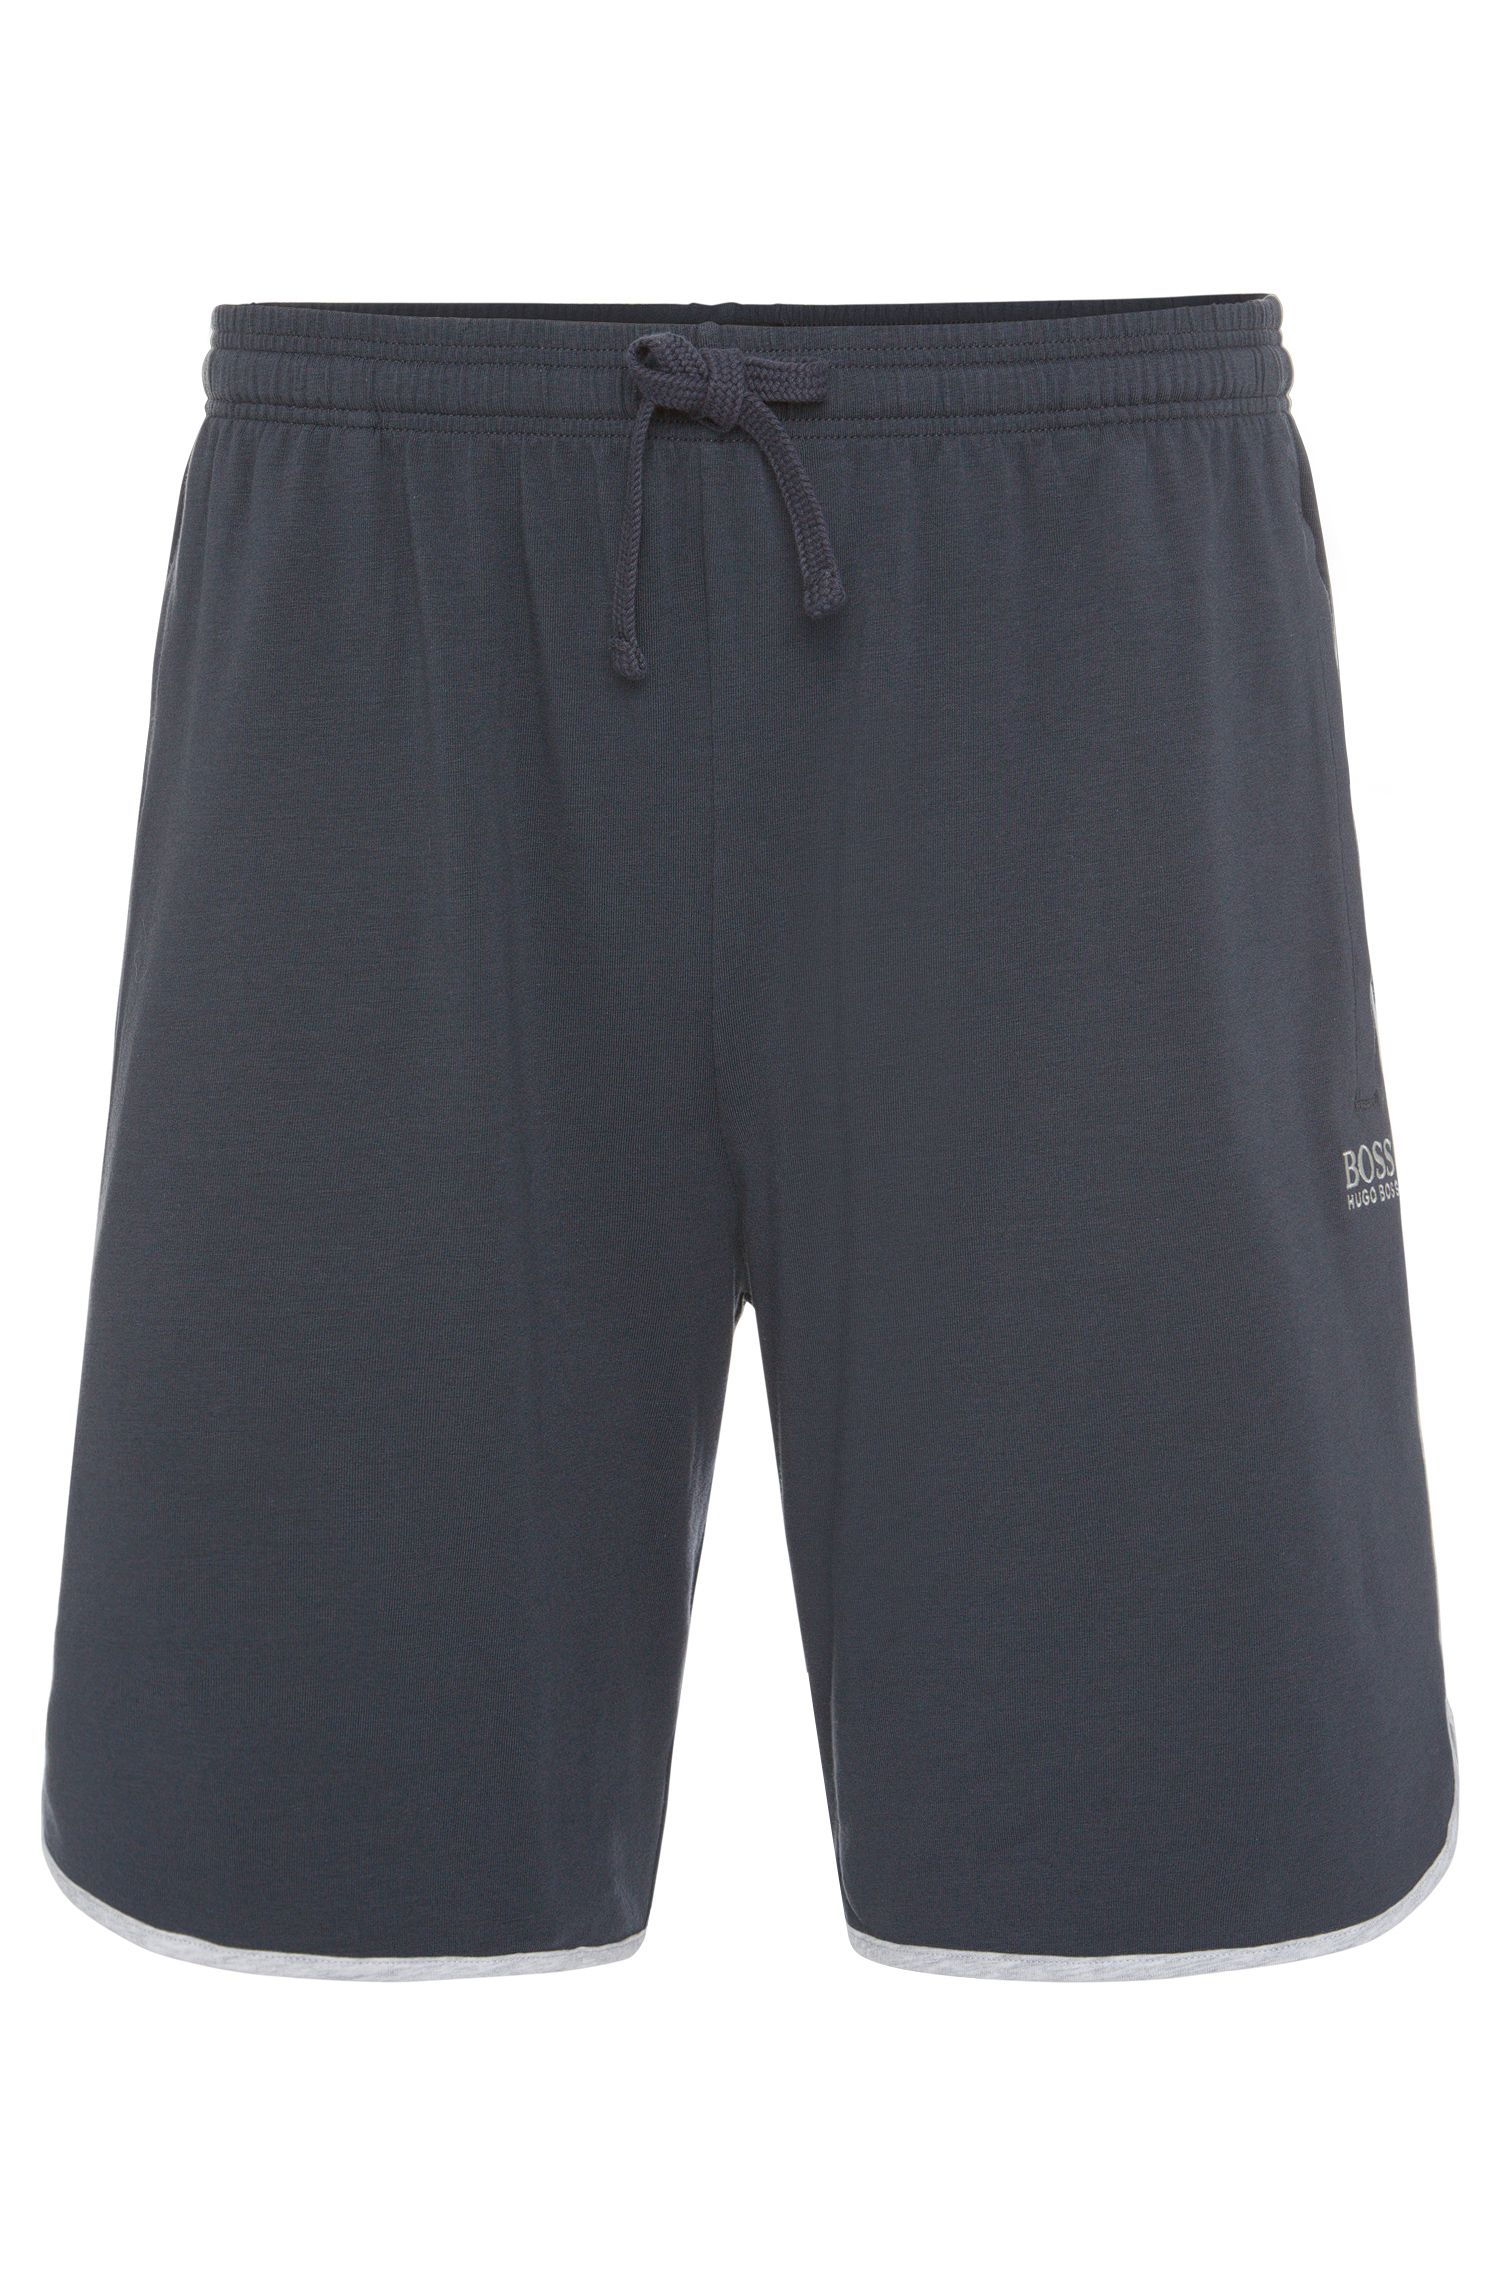 Shorts aus Stretch-Baumwolle: 'Short Pant CW'